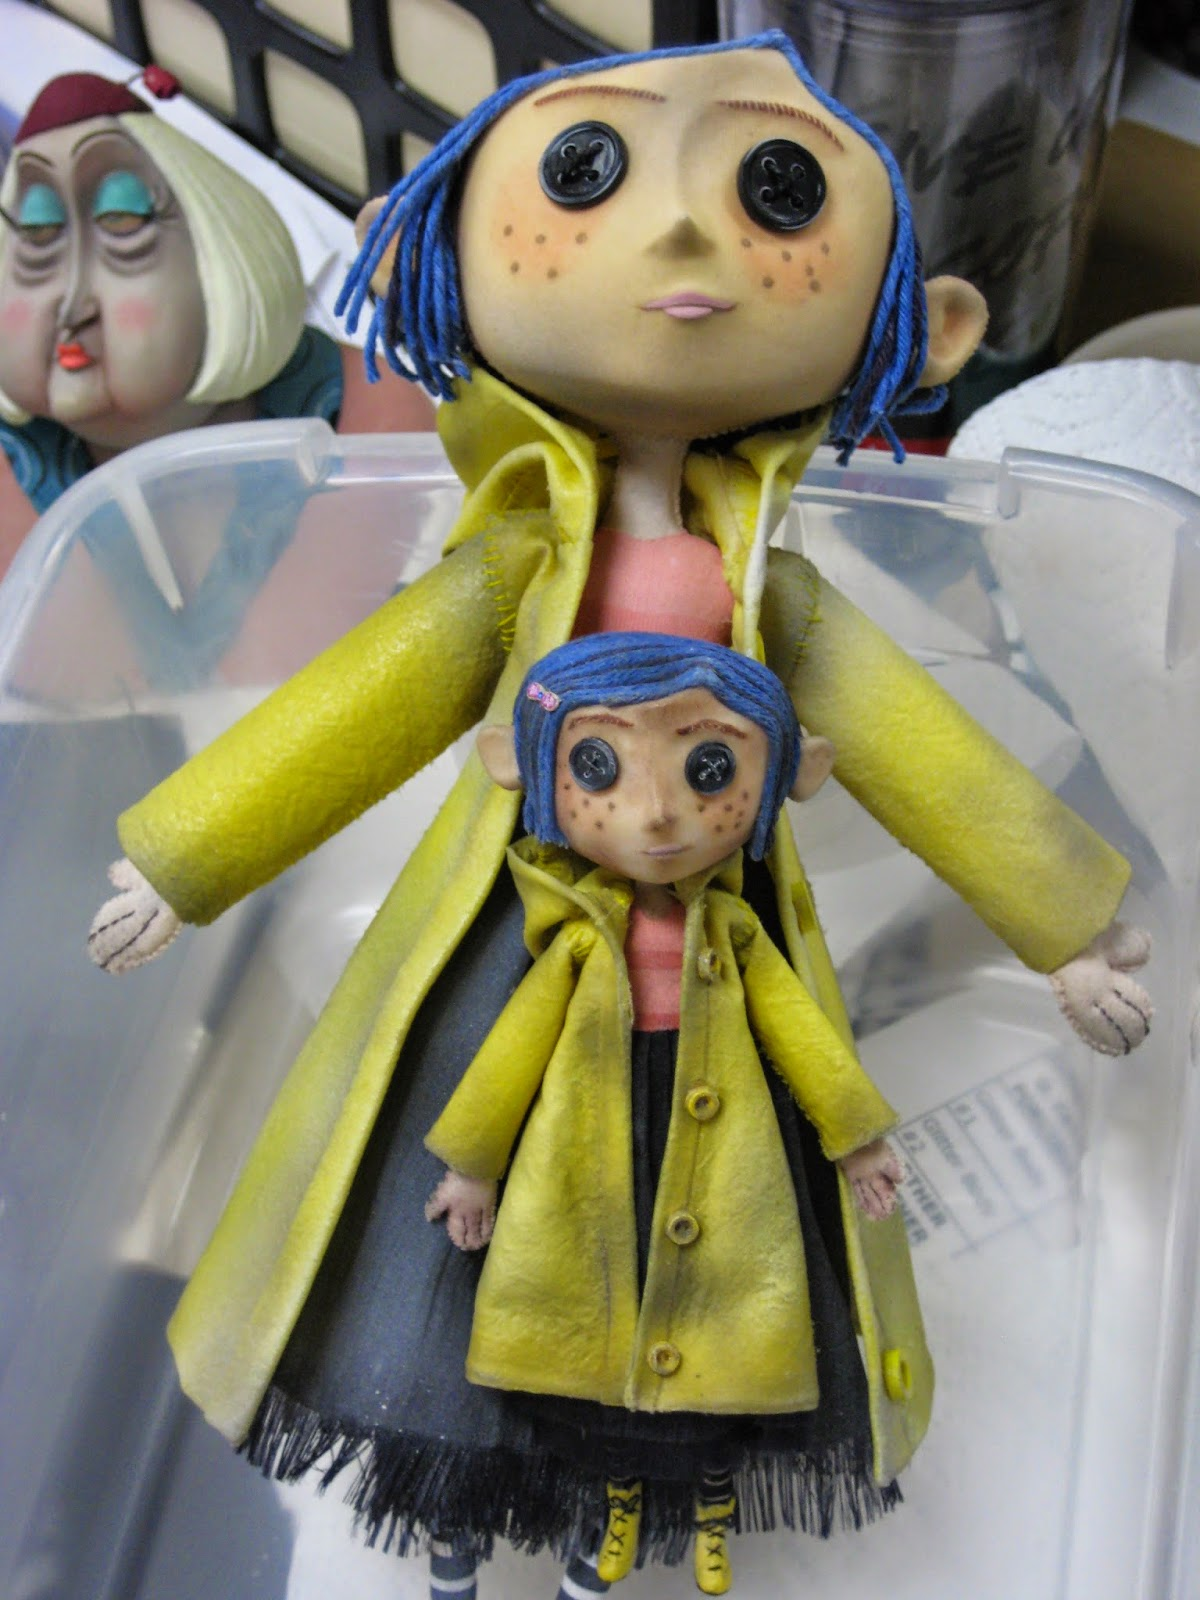 The Dolls Between Us: TheBreadsmasher: Coraline Little Me Dolls By Paloma Soledad